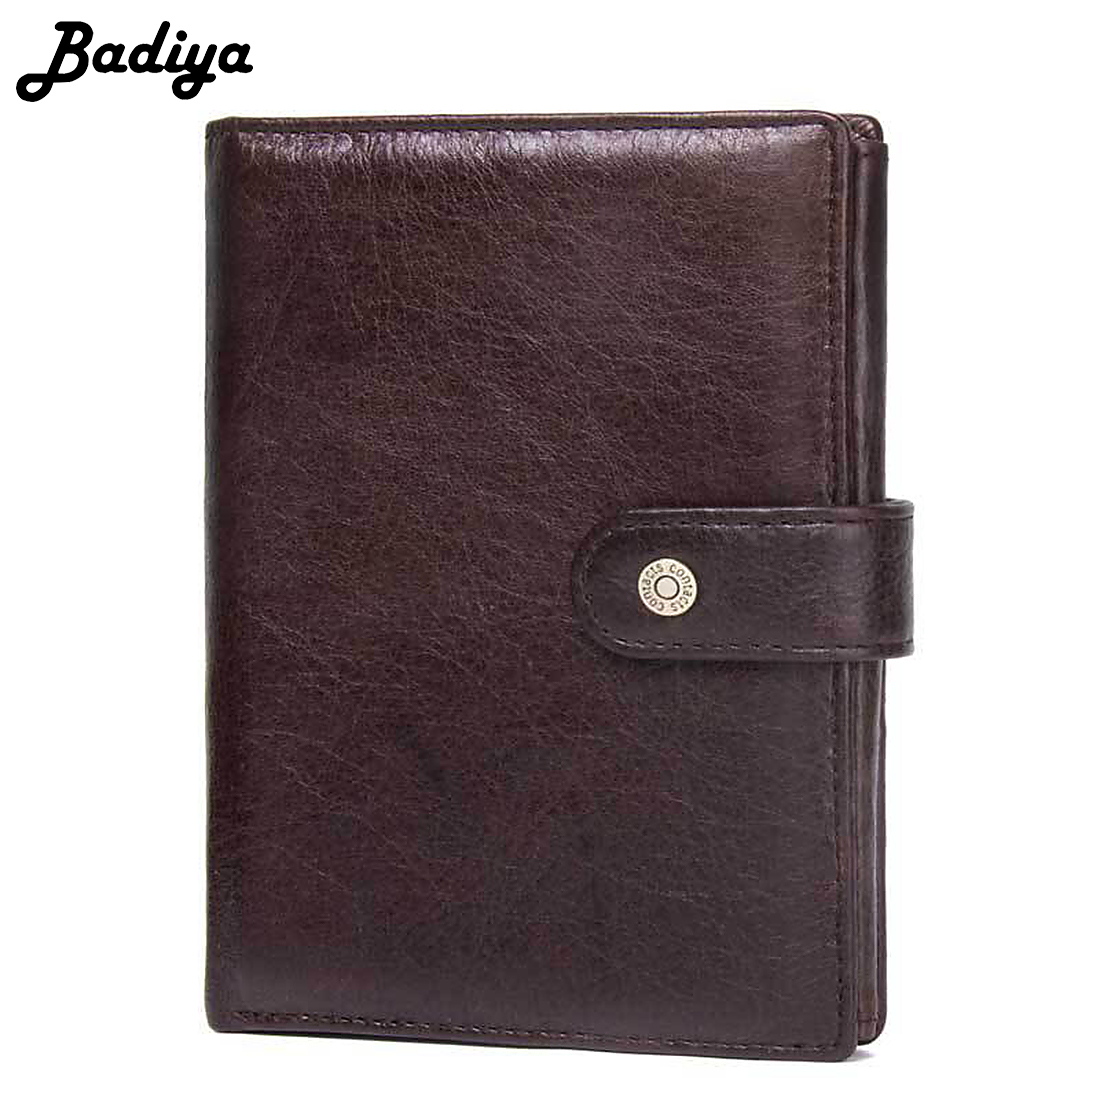 Vintage Men Genuine Leather Wallet Hasp Open Large Capacity Men Purse Card Holder Bifold Short Purse Clutch Coin Pocket Wallets men wallets 2017 vintage 100% genuine leather wallet cowhide clutch bag men s card holder purse with coin pocket